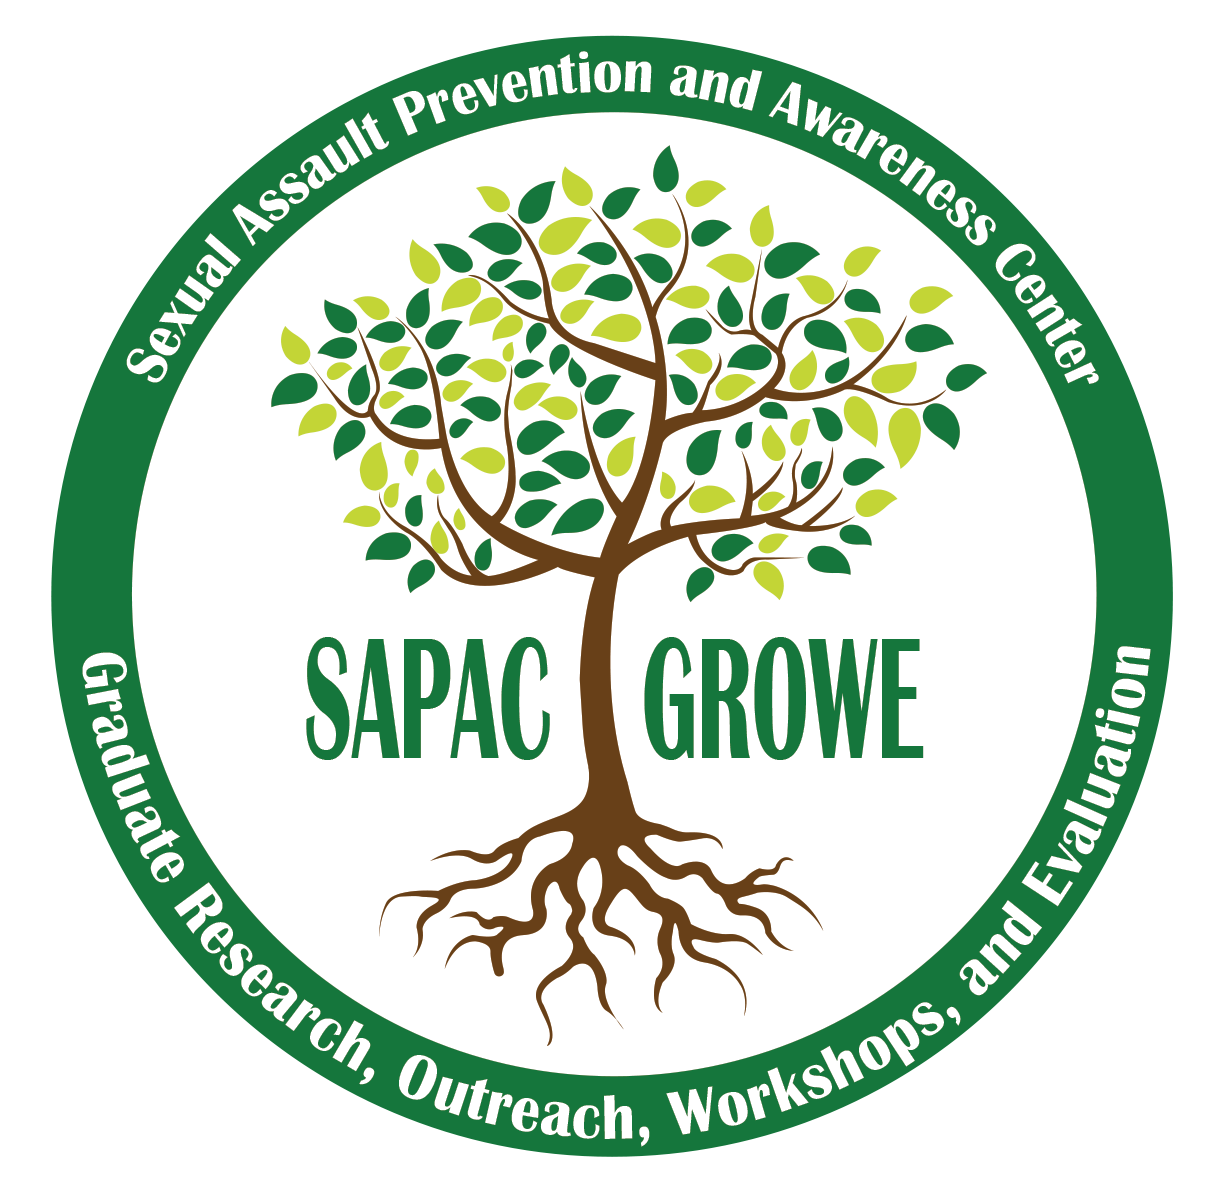 A logo that has leaves and roots spreading over the words SAPAC GROWE